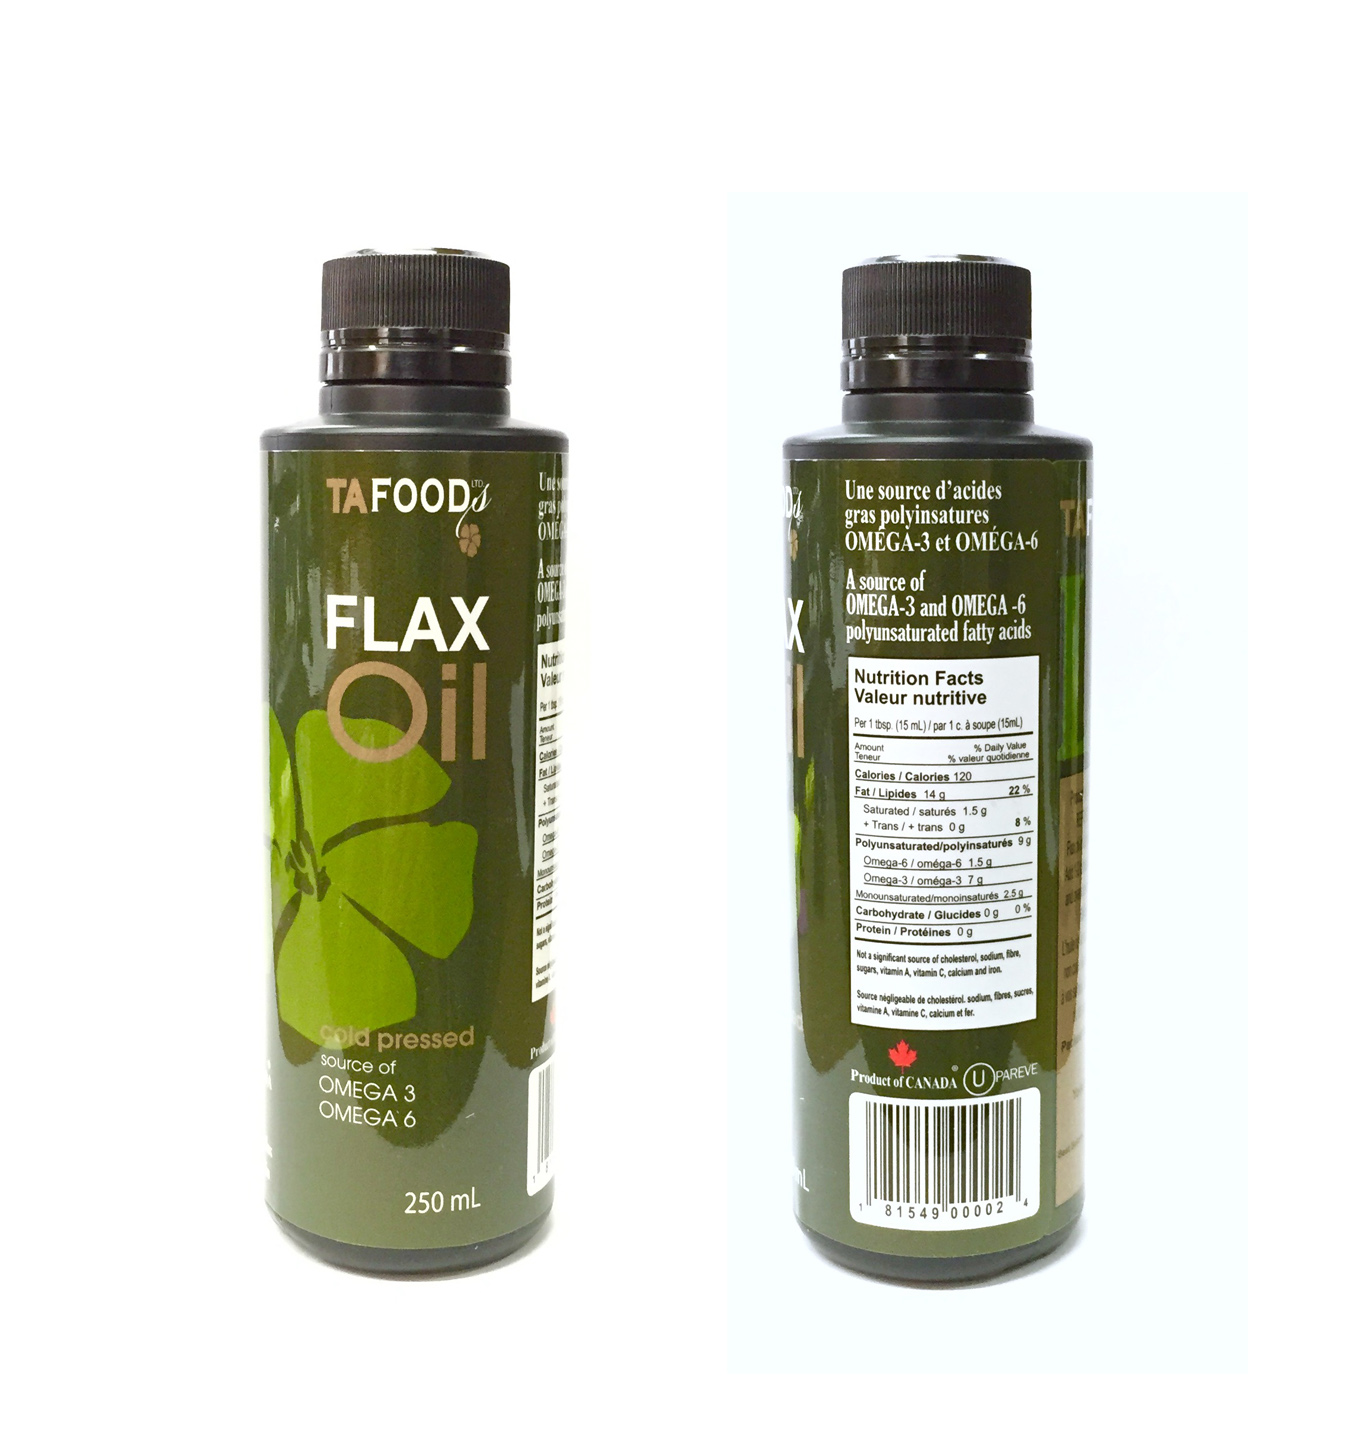 250ml Conventional Oil in plastic bottle